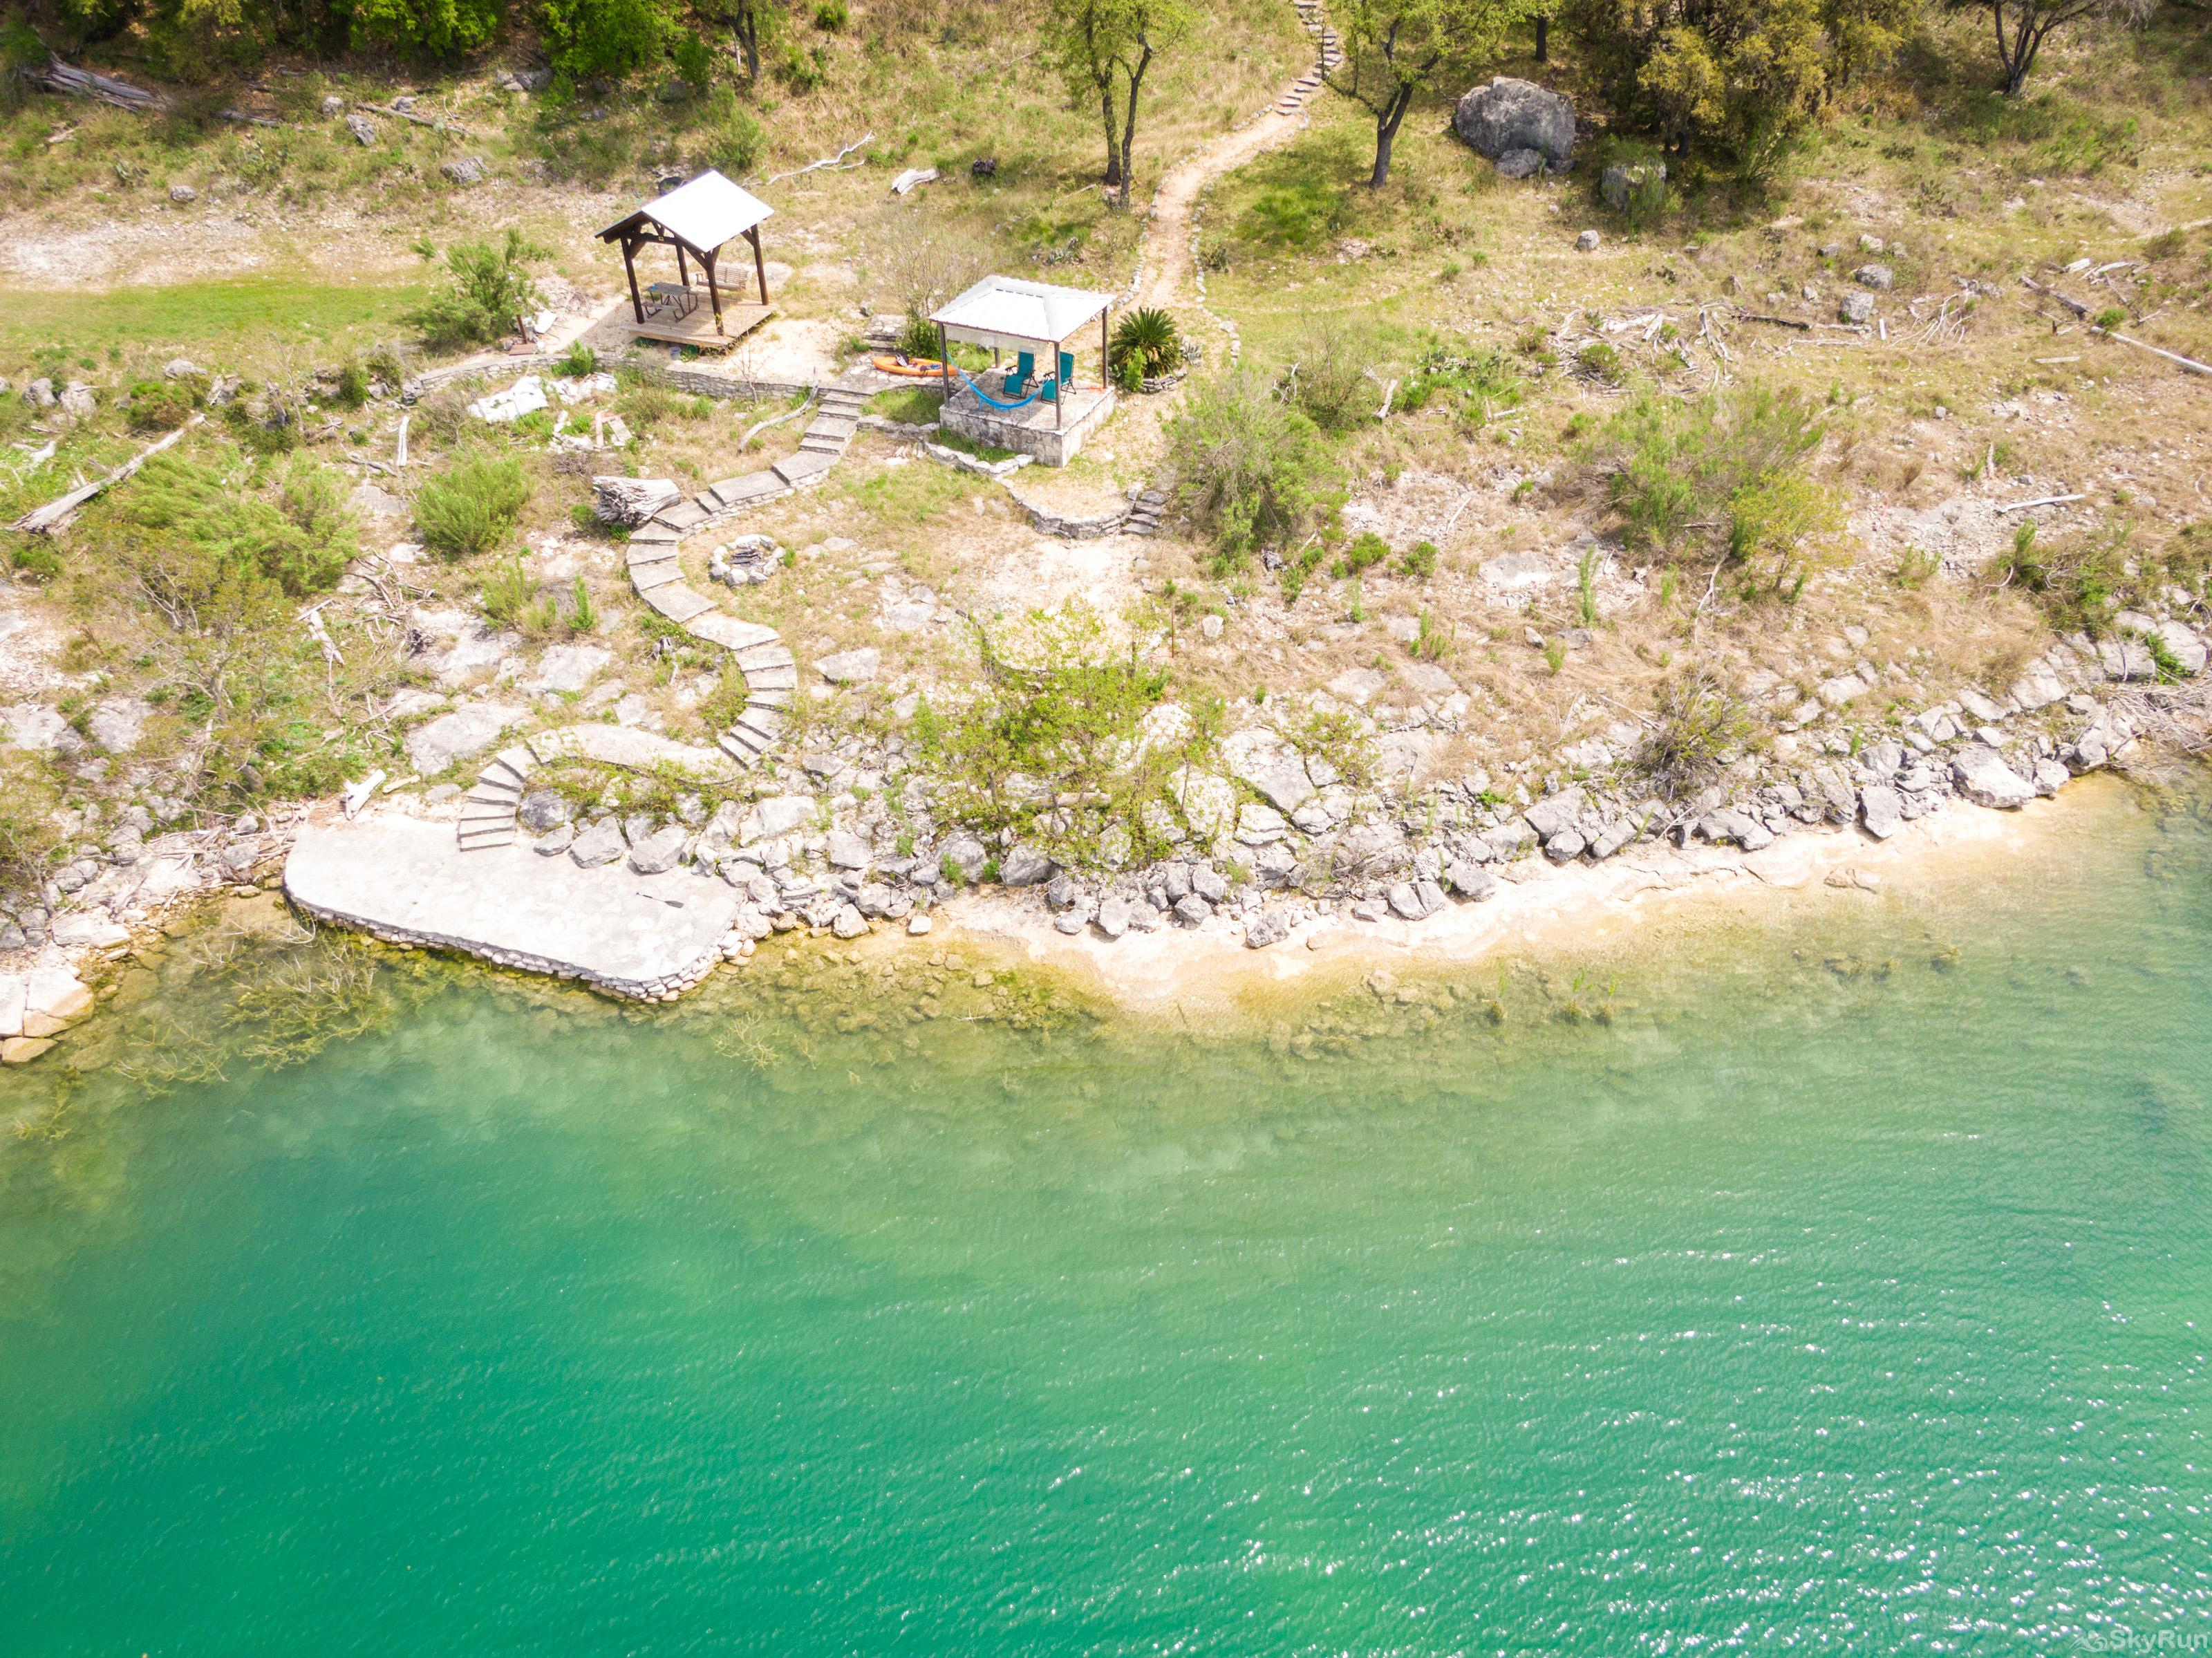 LAKESIDE VILLA Aerial view of the shoreline and gazebo below the home